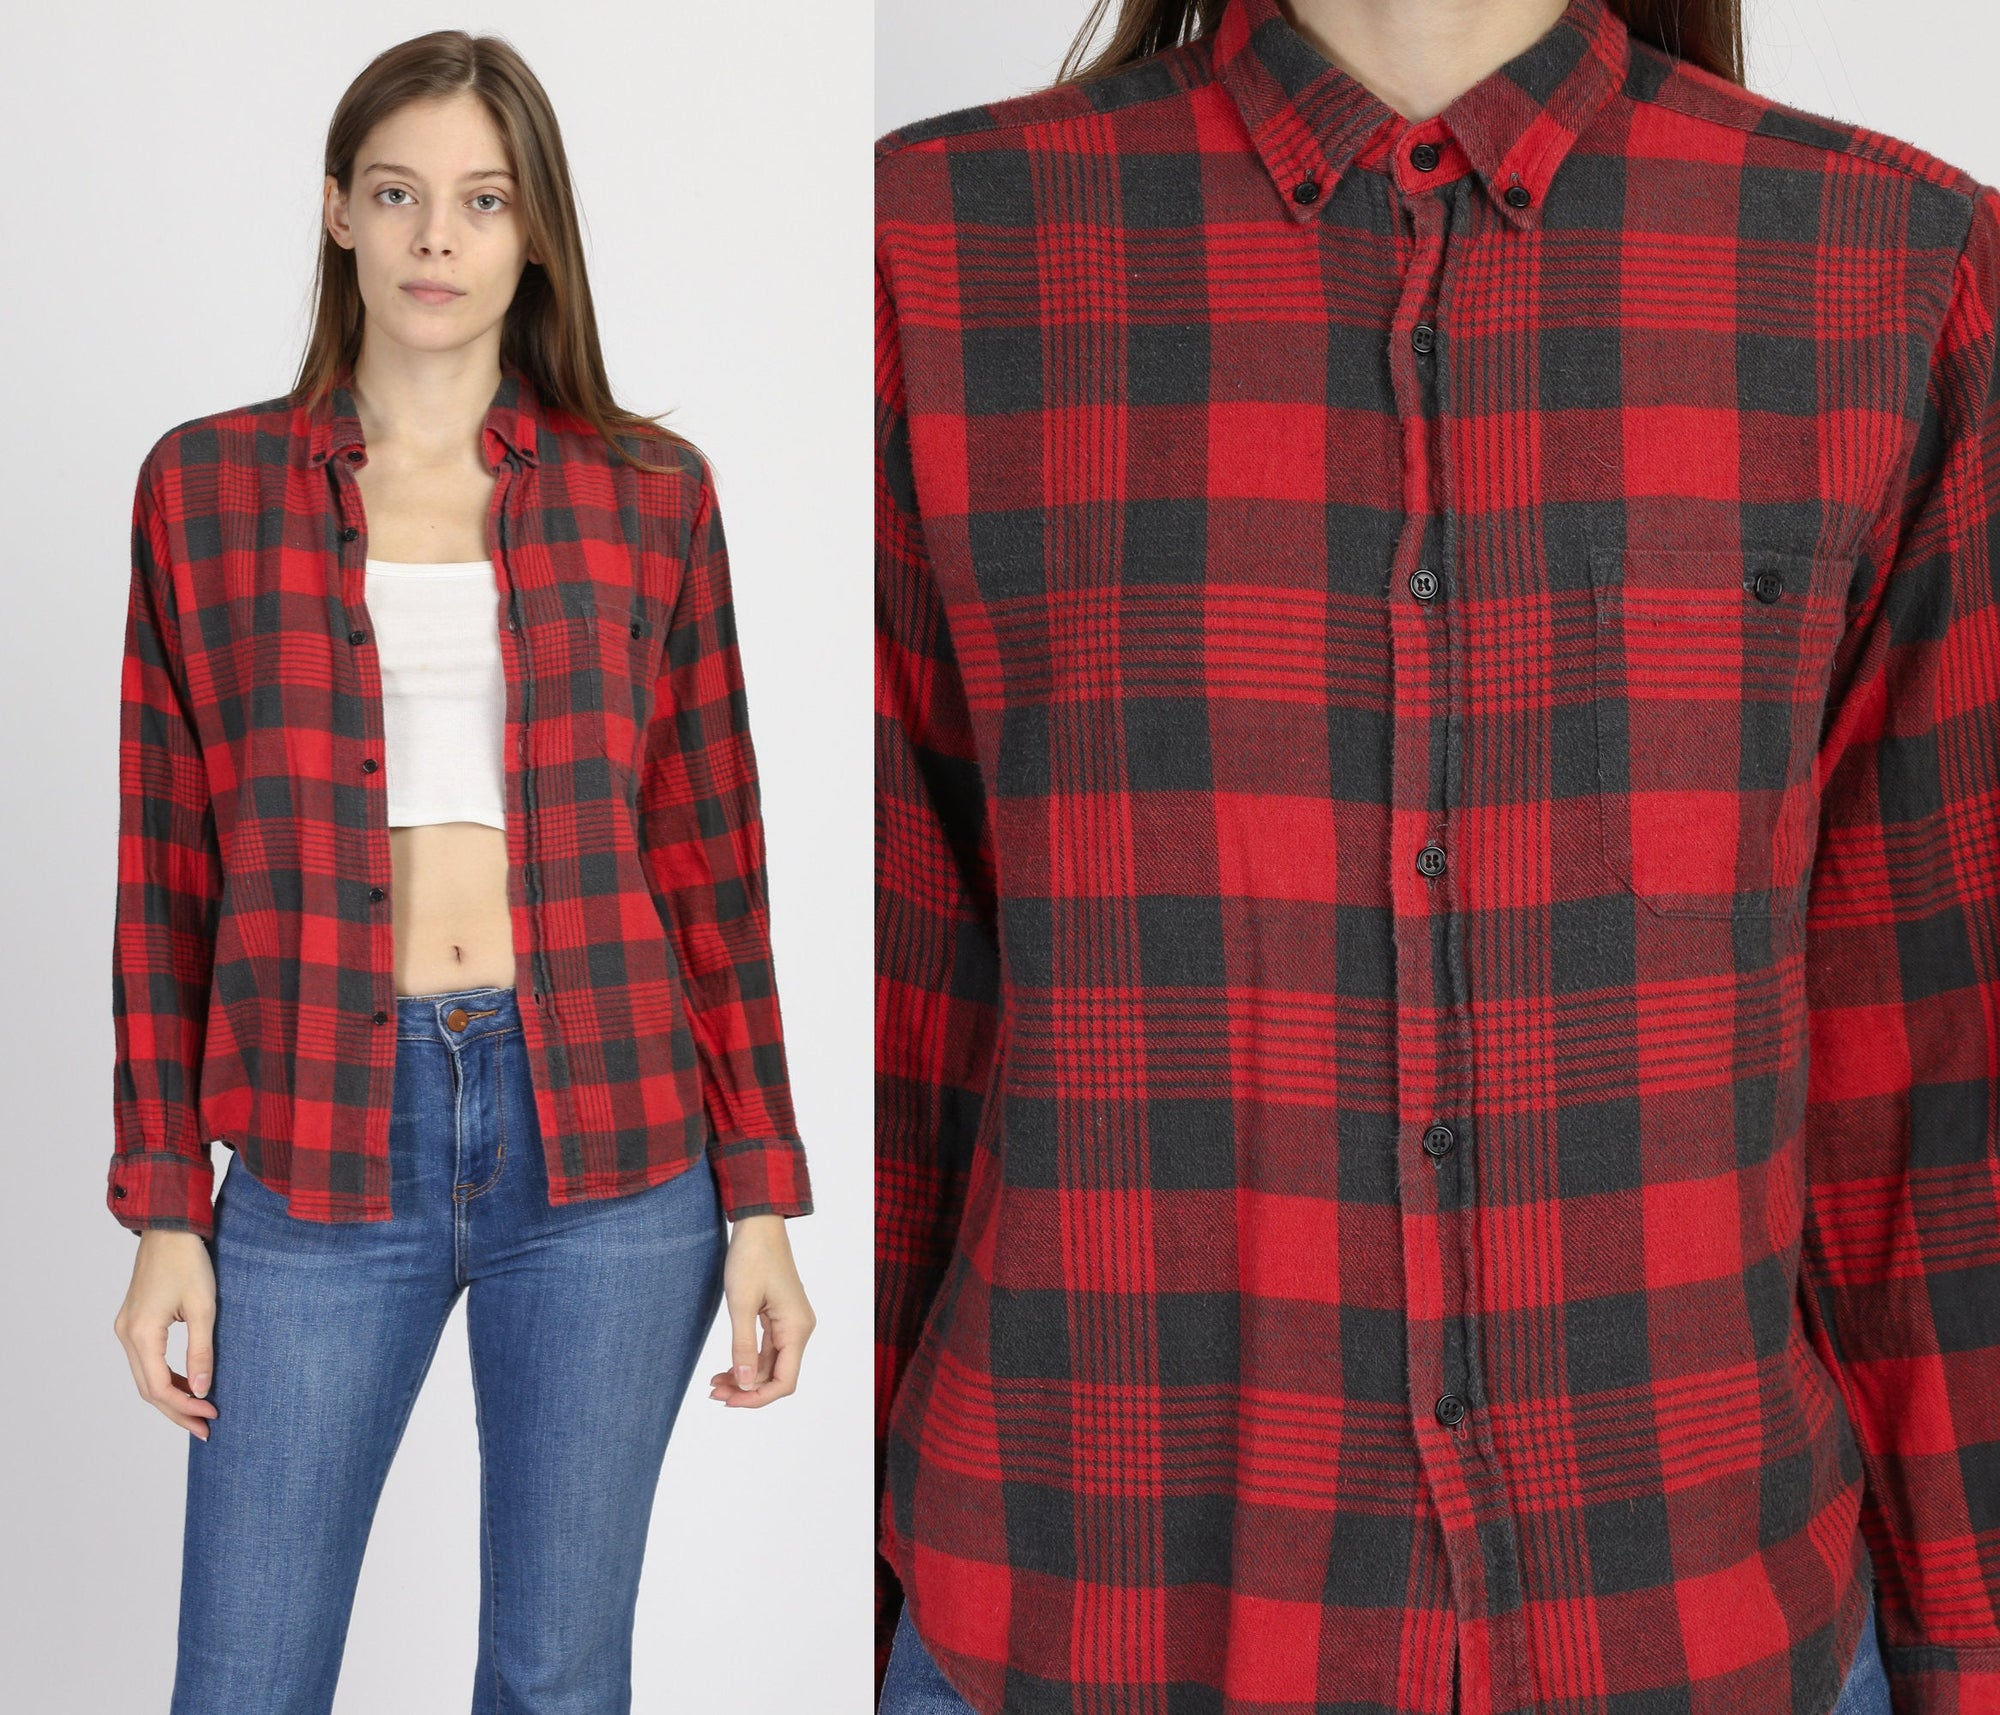 Vintage Grunge Plaid Flannel Shirt - Small